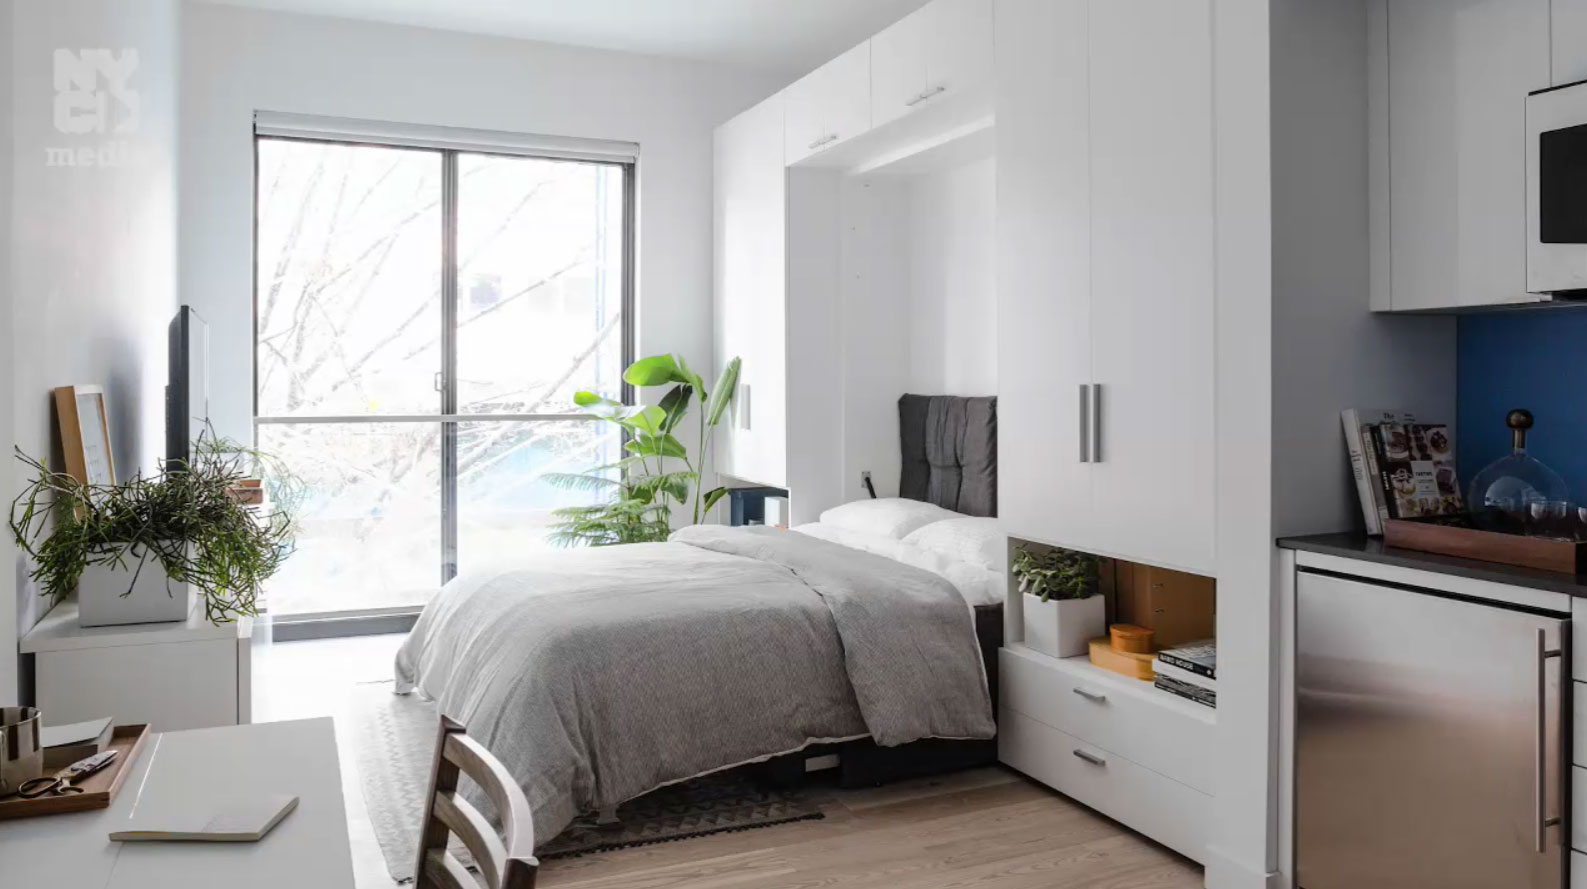 See inside nyc s first micro apartment building transforming furniture for tiny spaces casa - Beds in small spaces collection ...